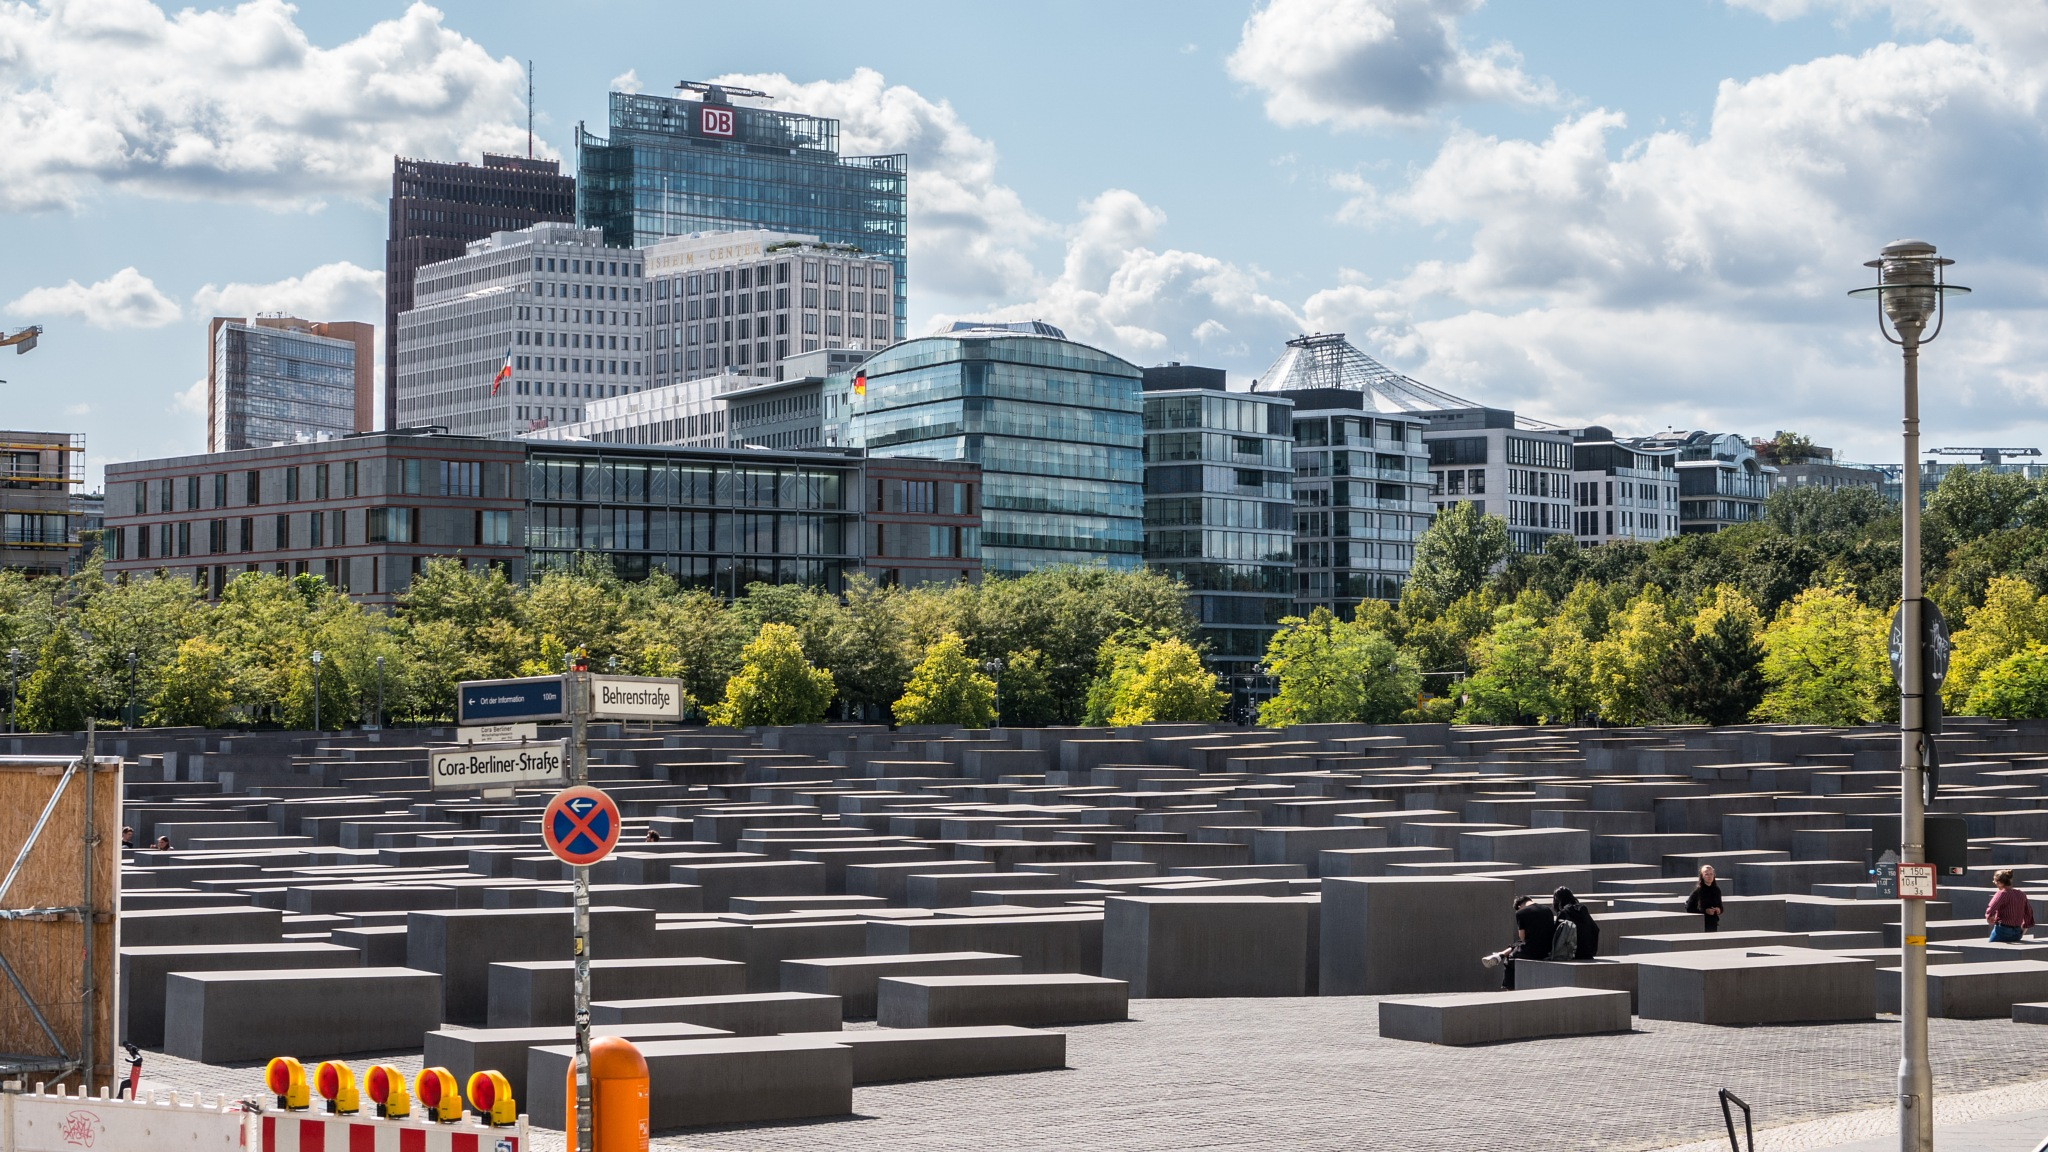 Memorial to the Murdered Jews of Europe by Bernhard